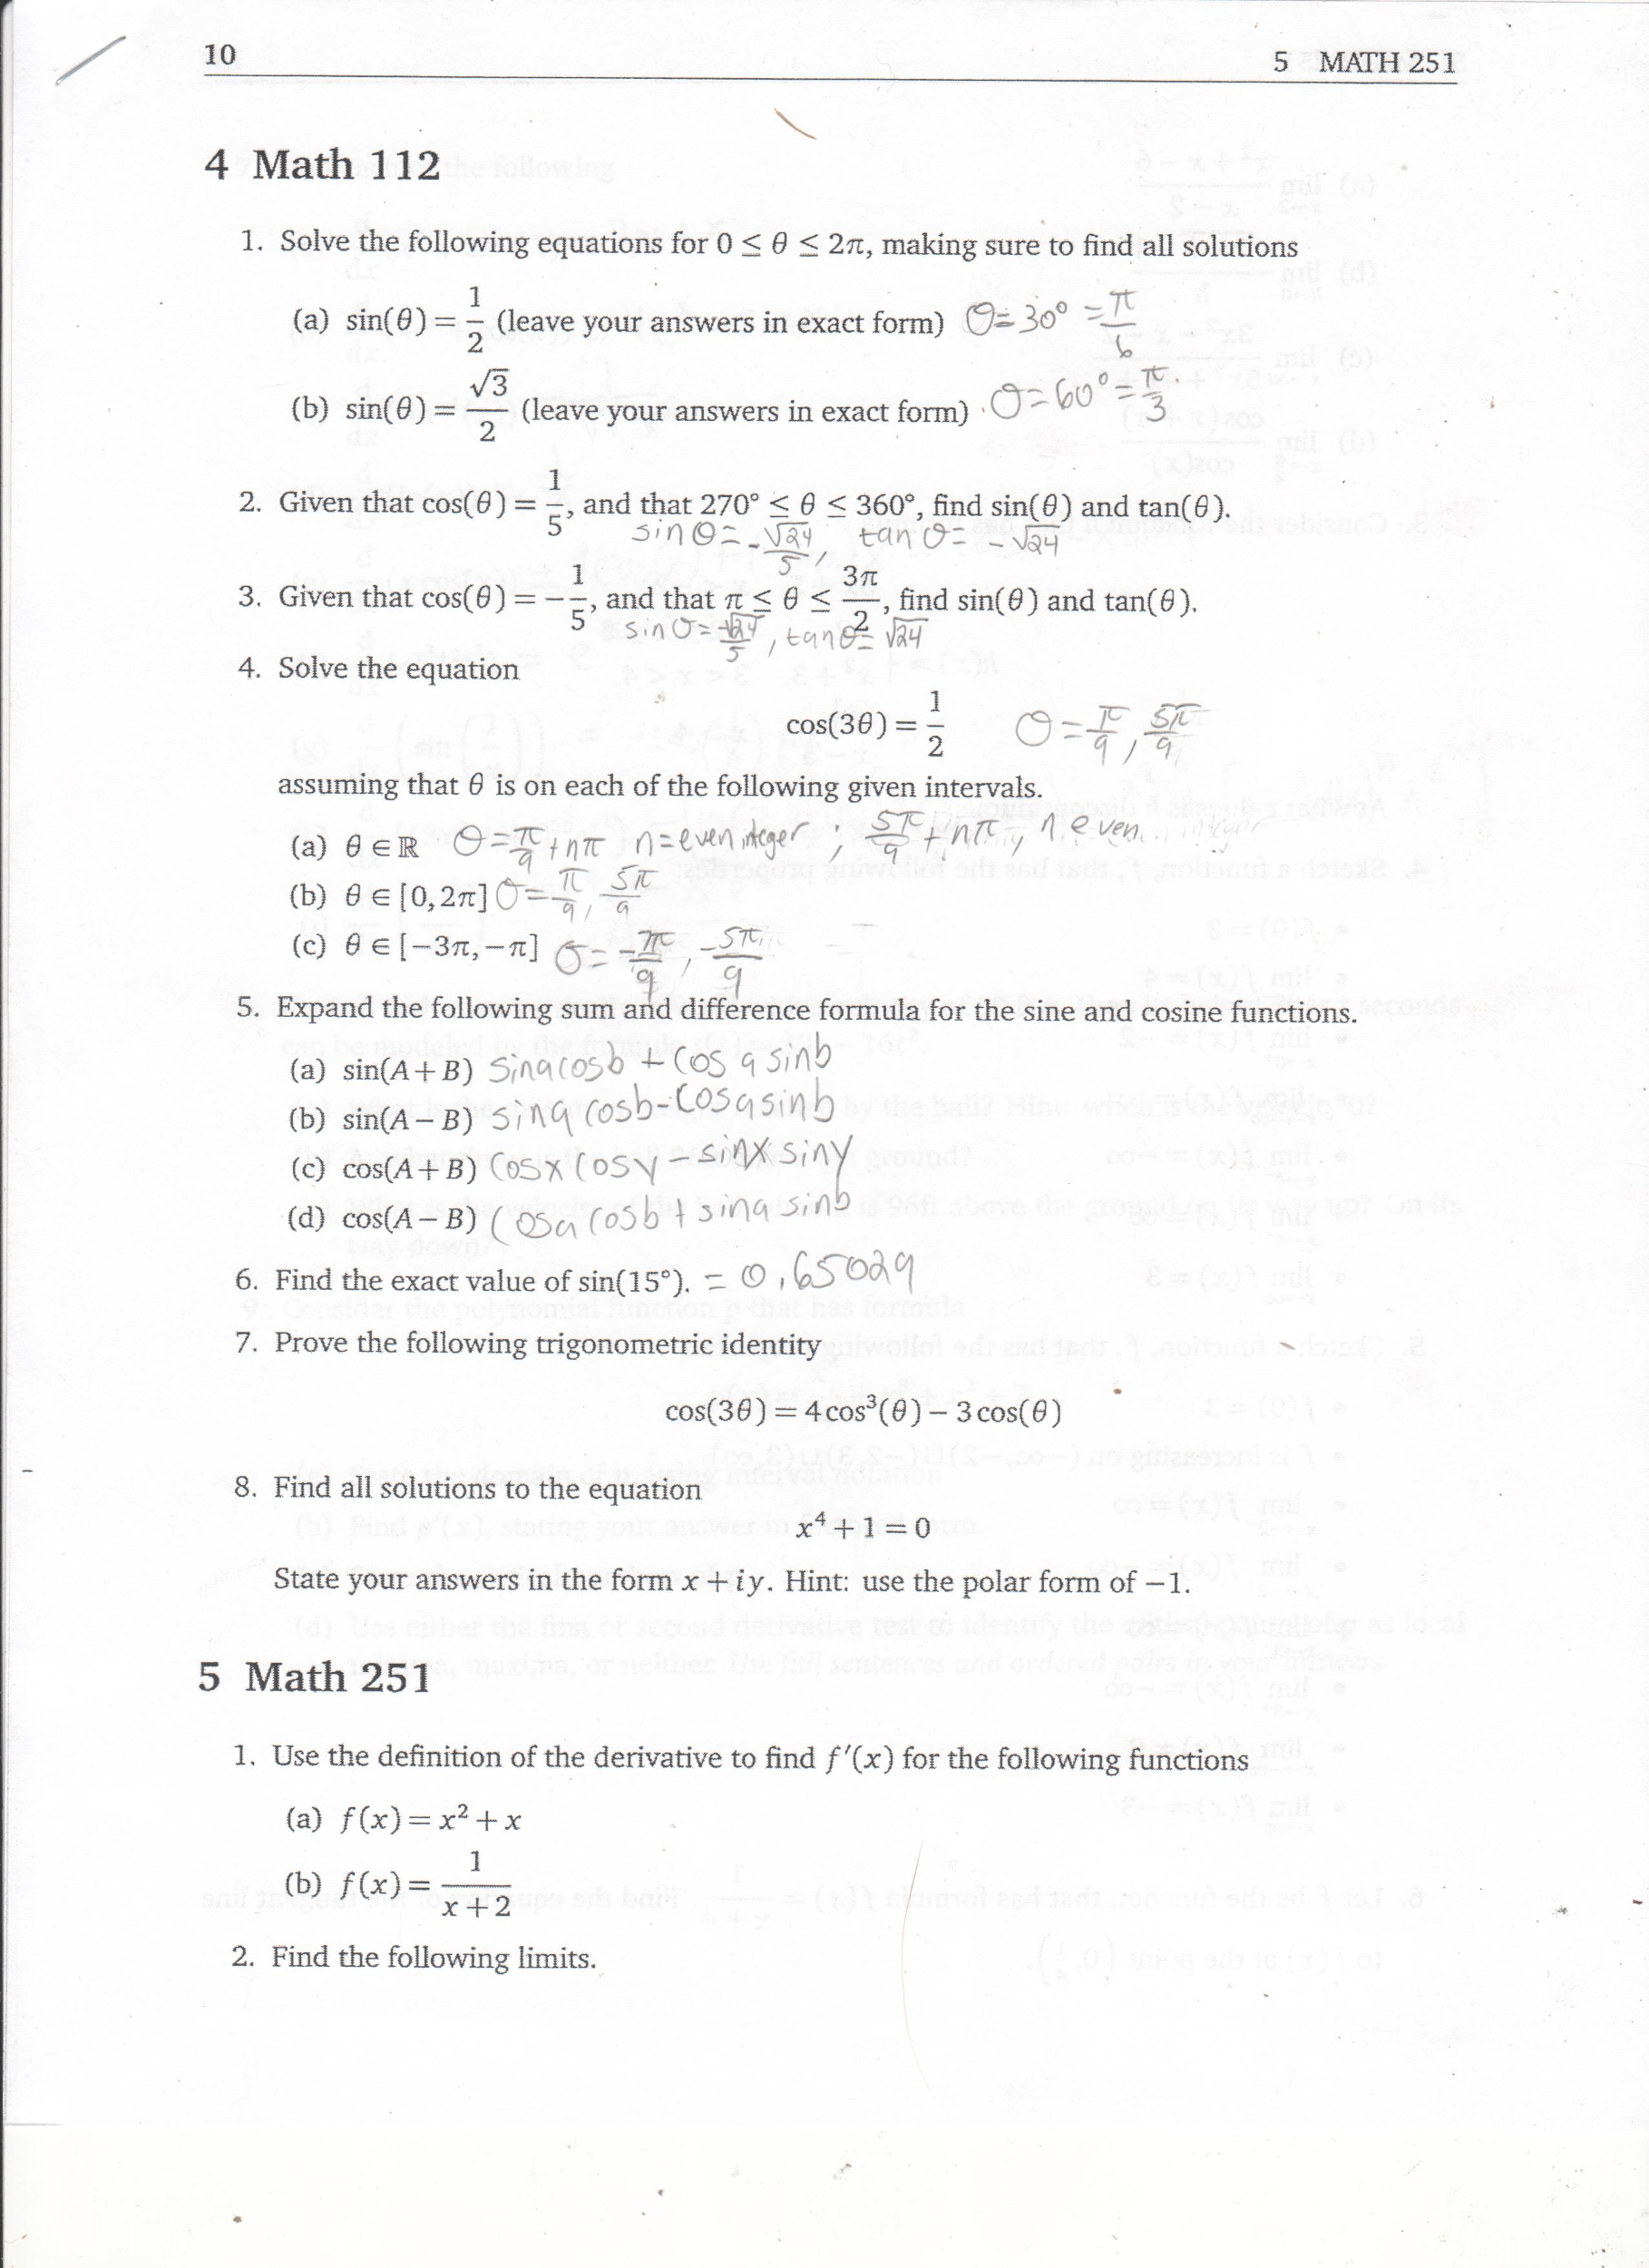 Please Help Me Solve Questions 7 And 8 And Also Please Checkmy Work To Make Sure That It Is